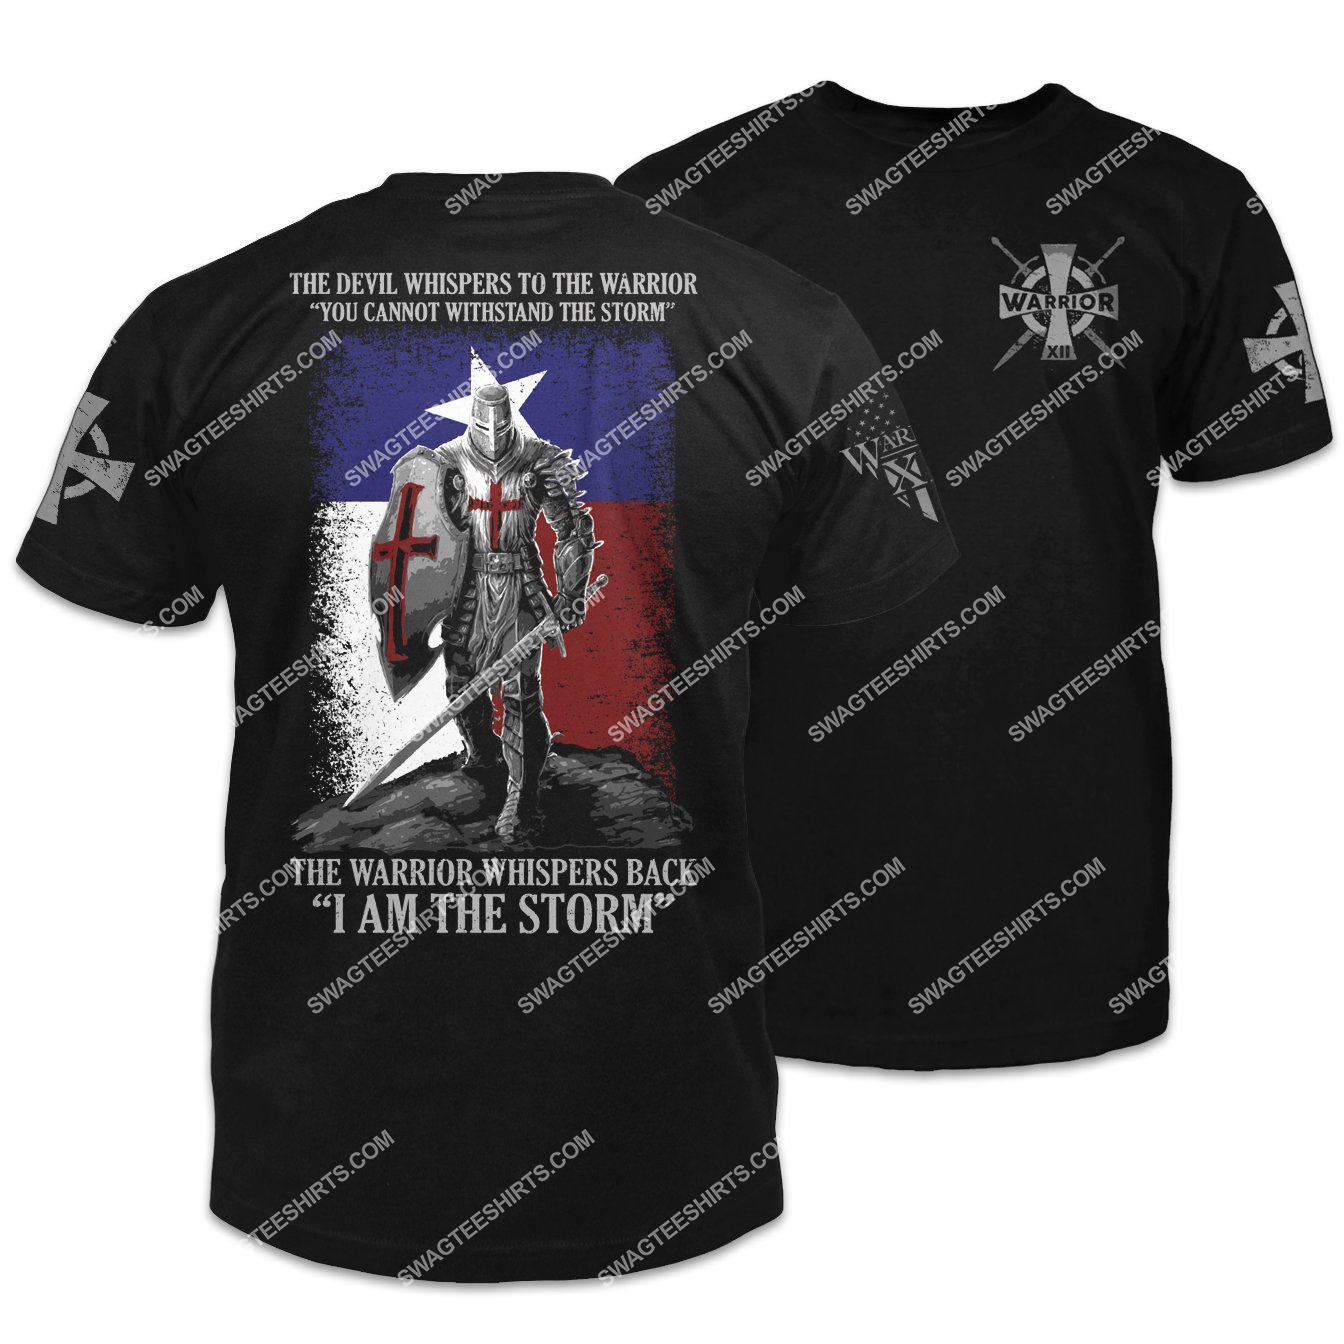 the devil whispers to the warrior you cannot withstand the storm knights templar shirt 1